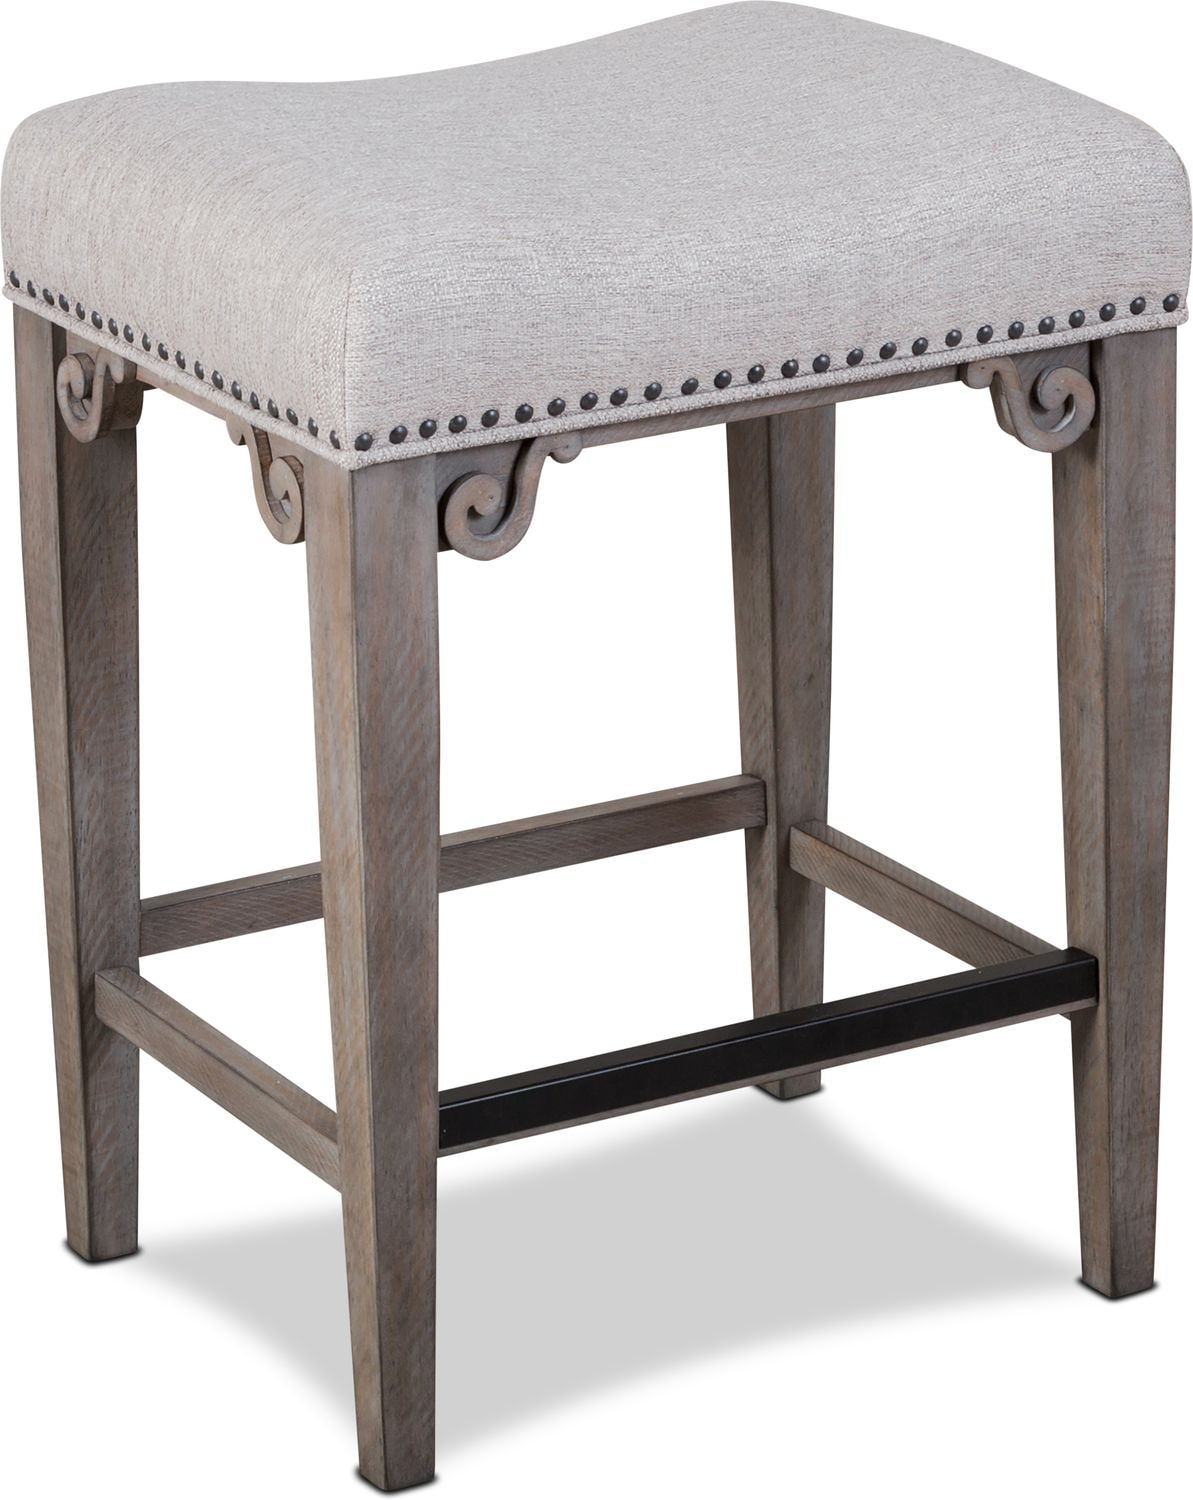 Dining Room Furniture - Charthouse Counter-Height Backless Stool